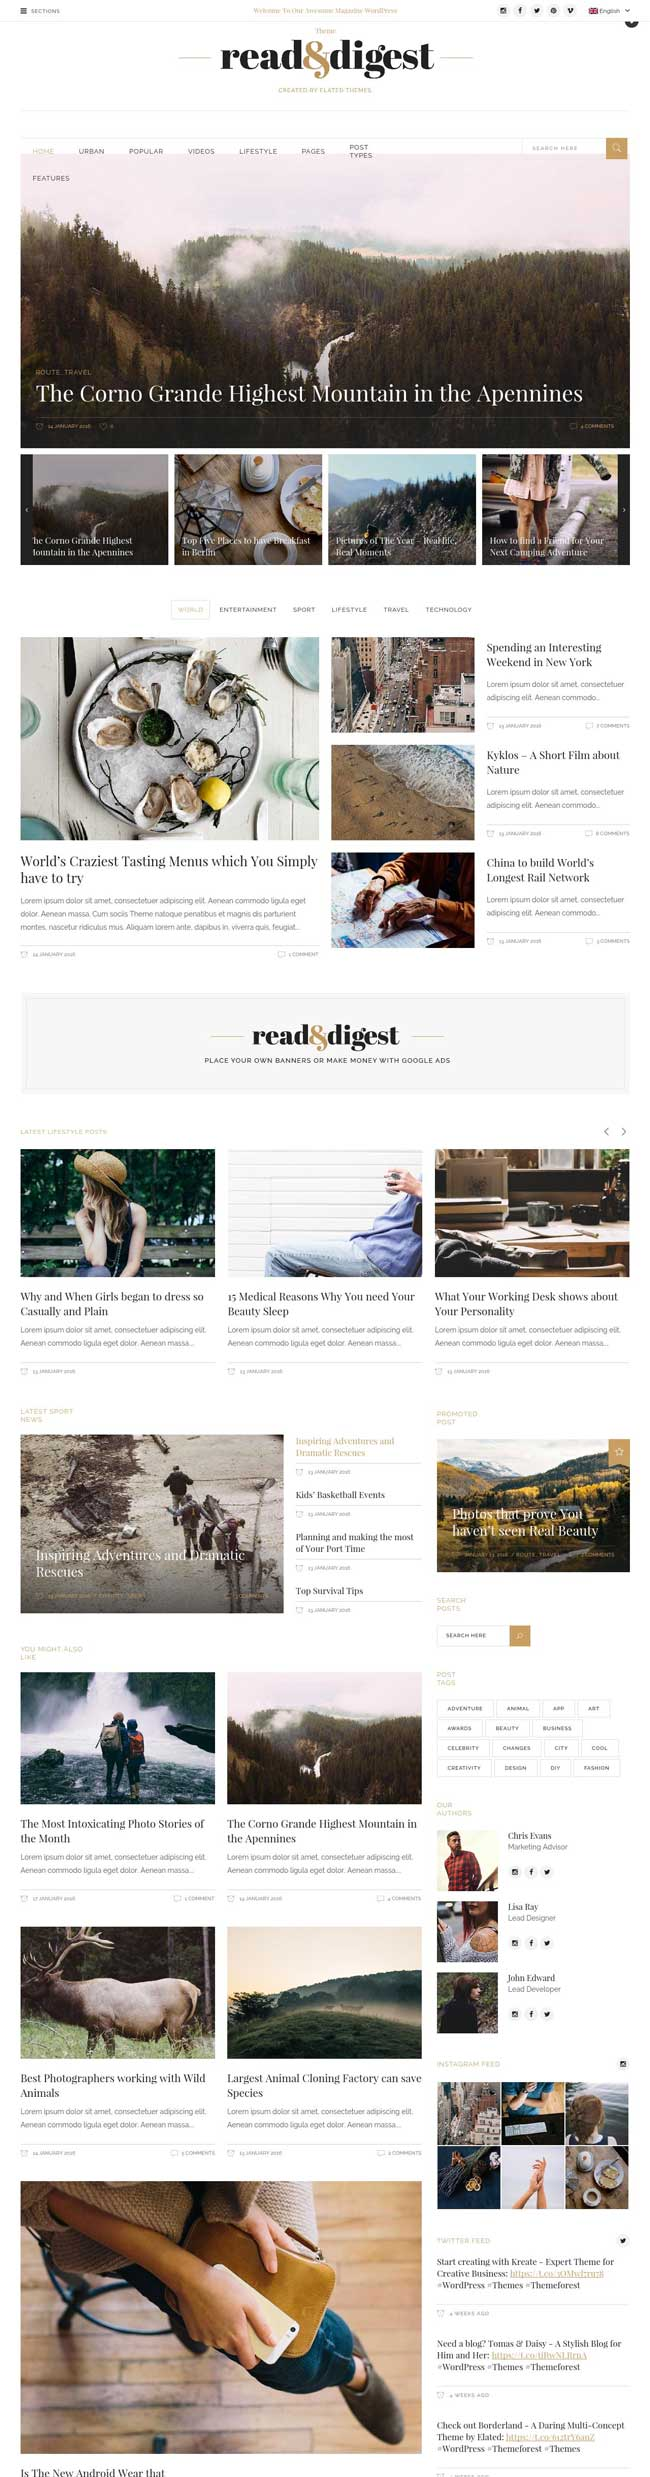 Read-Digest-Wordpress-Theme-for-Blog,-Magazine-or-Newspaper